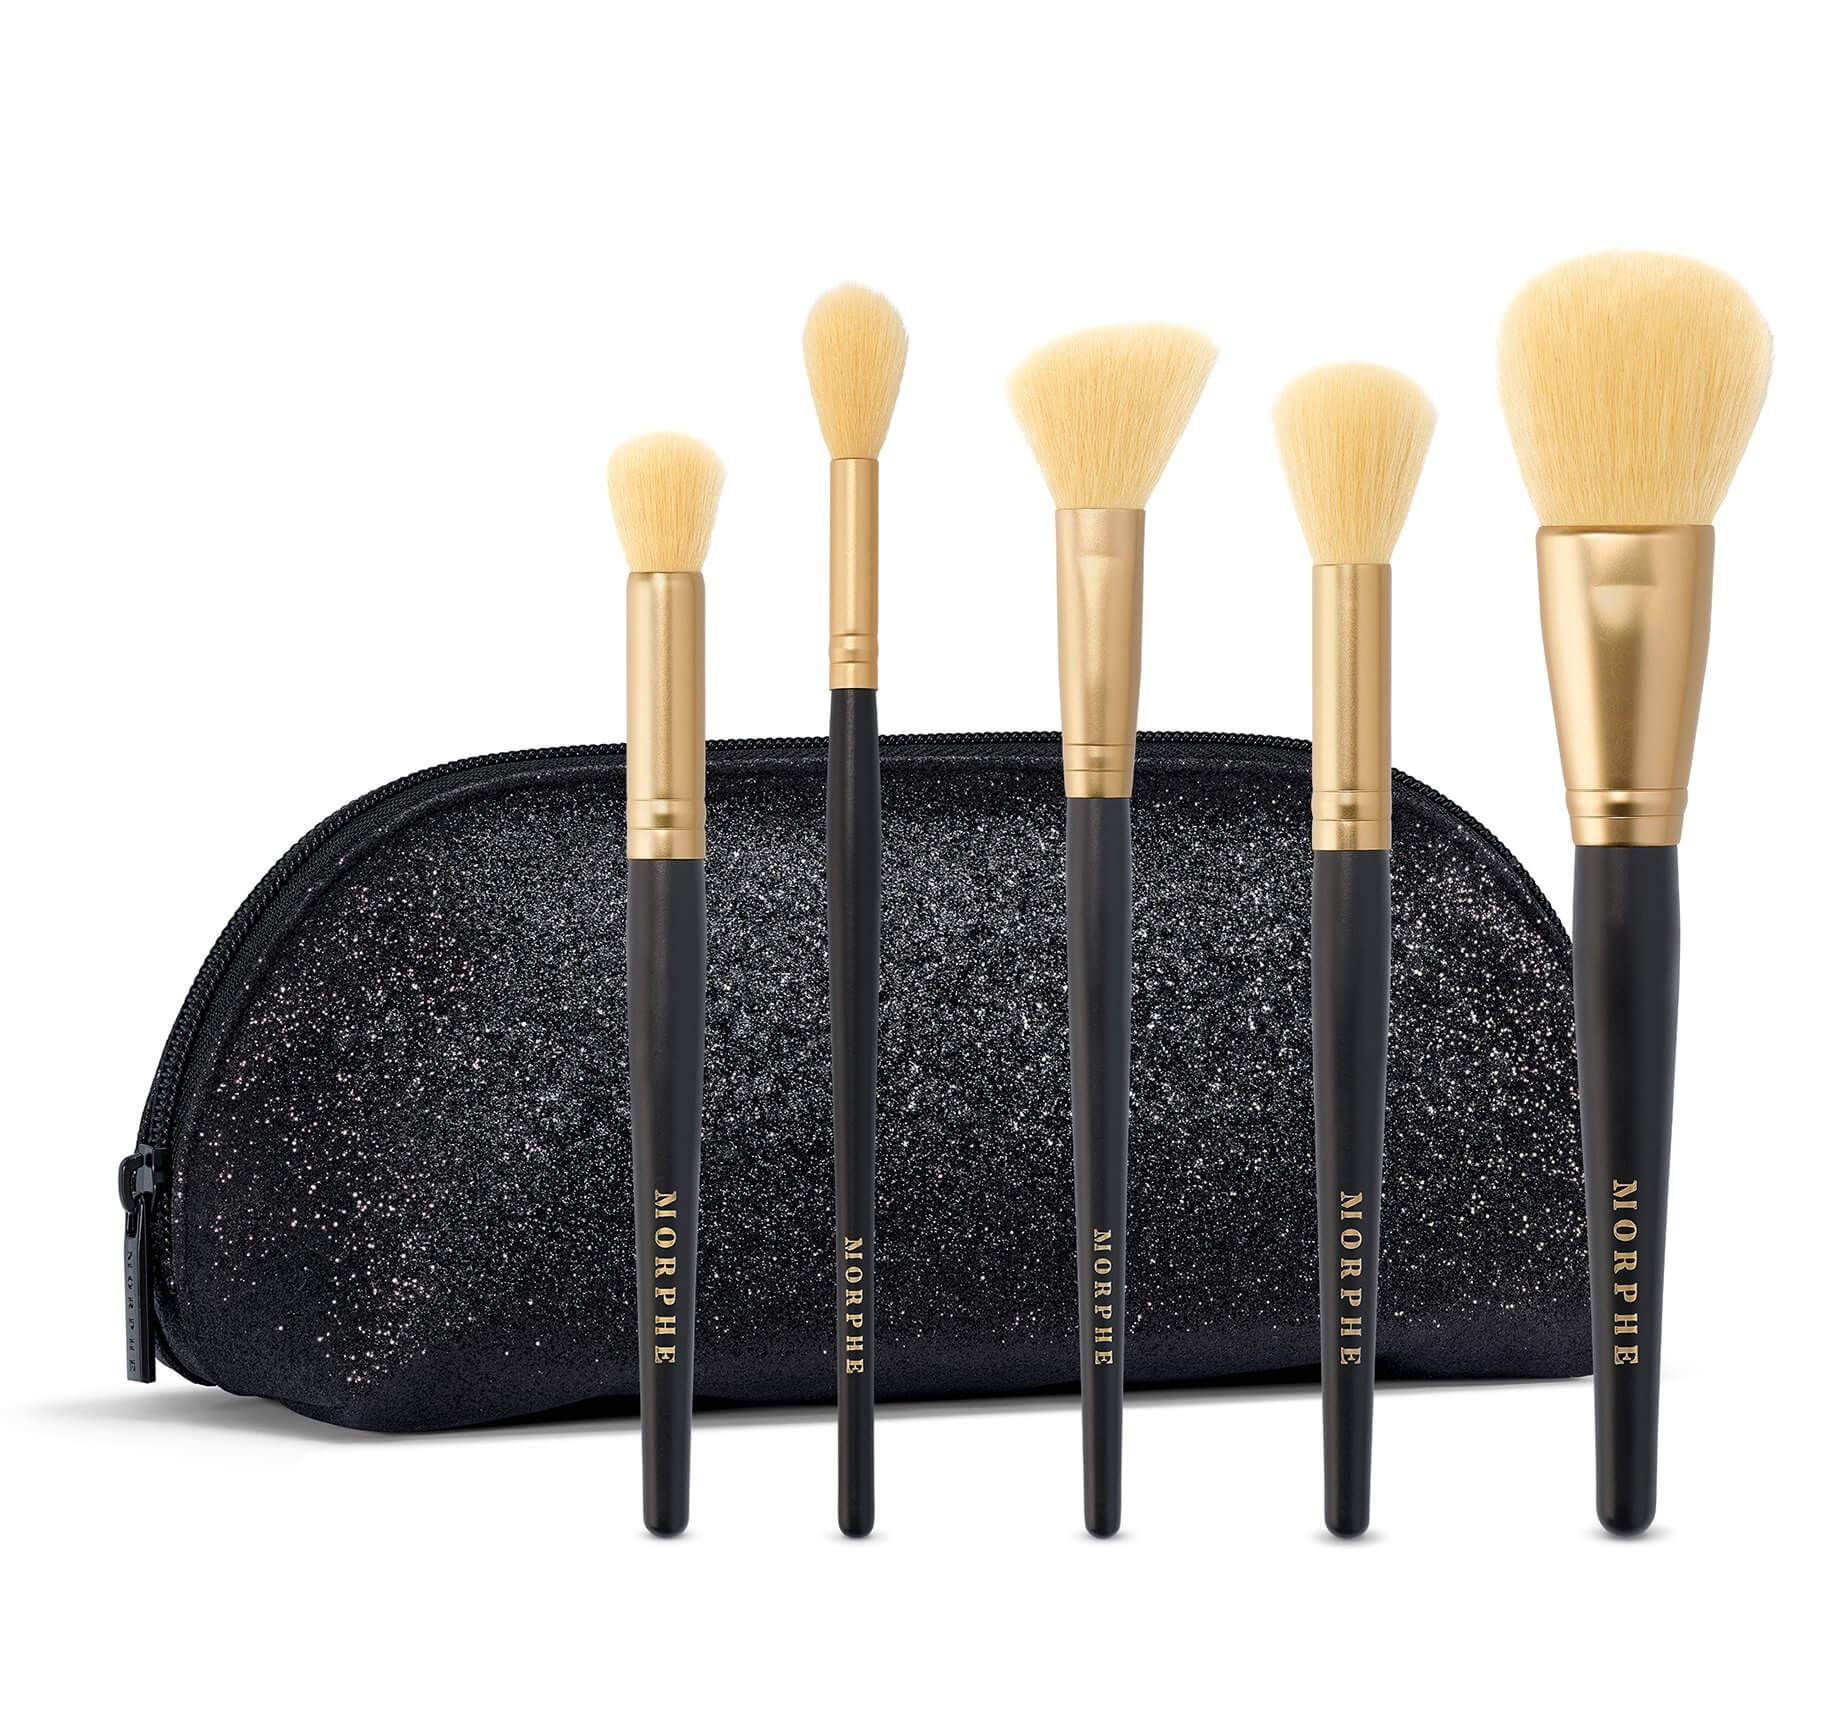 Kit Complexion Crew Brush MORPHE BRUSHES